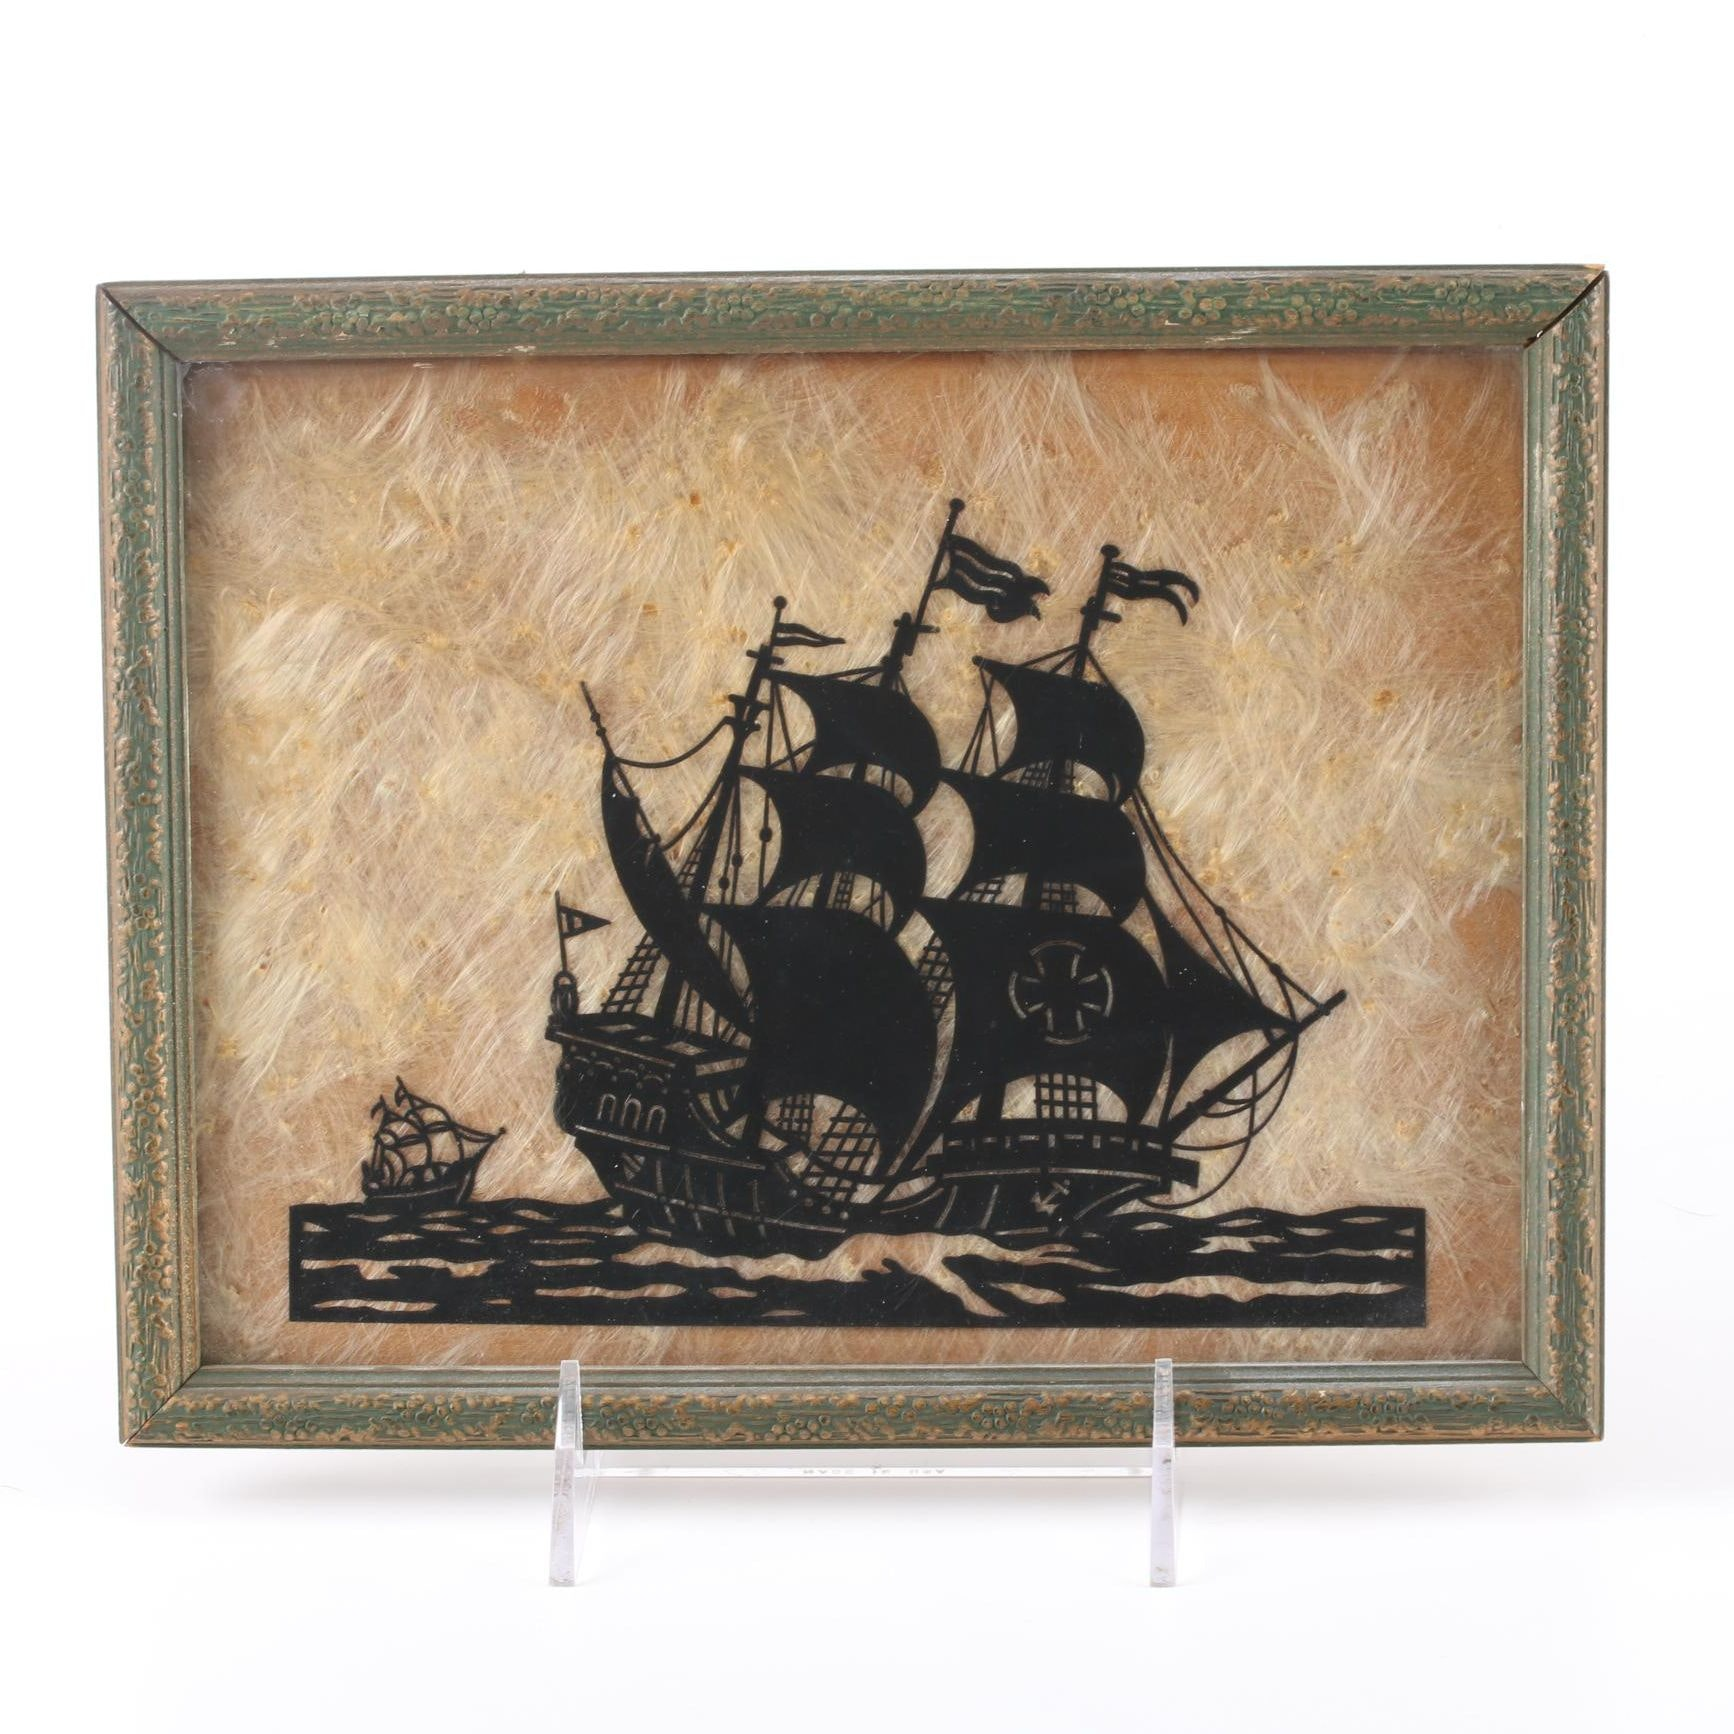 Mixed Media Collage of Naval Ship